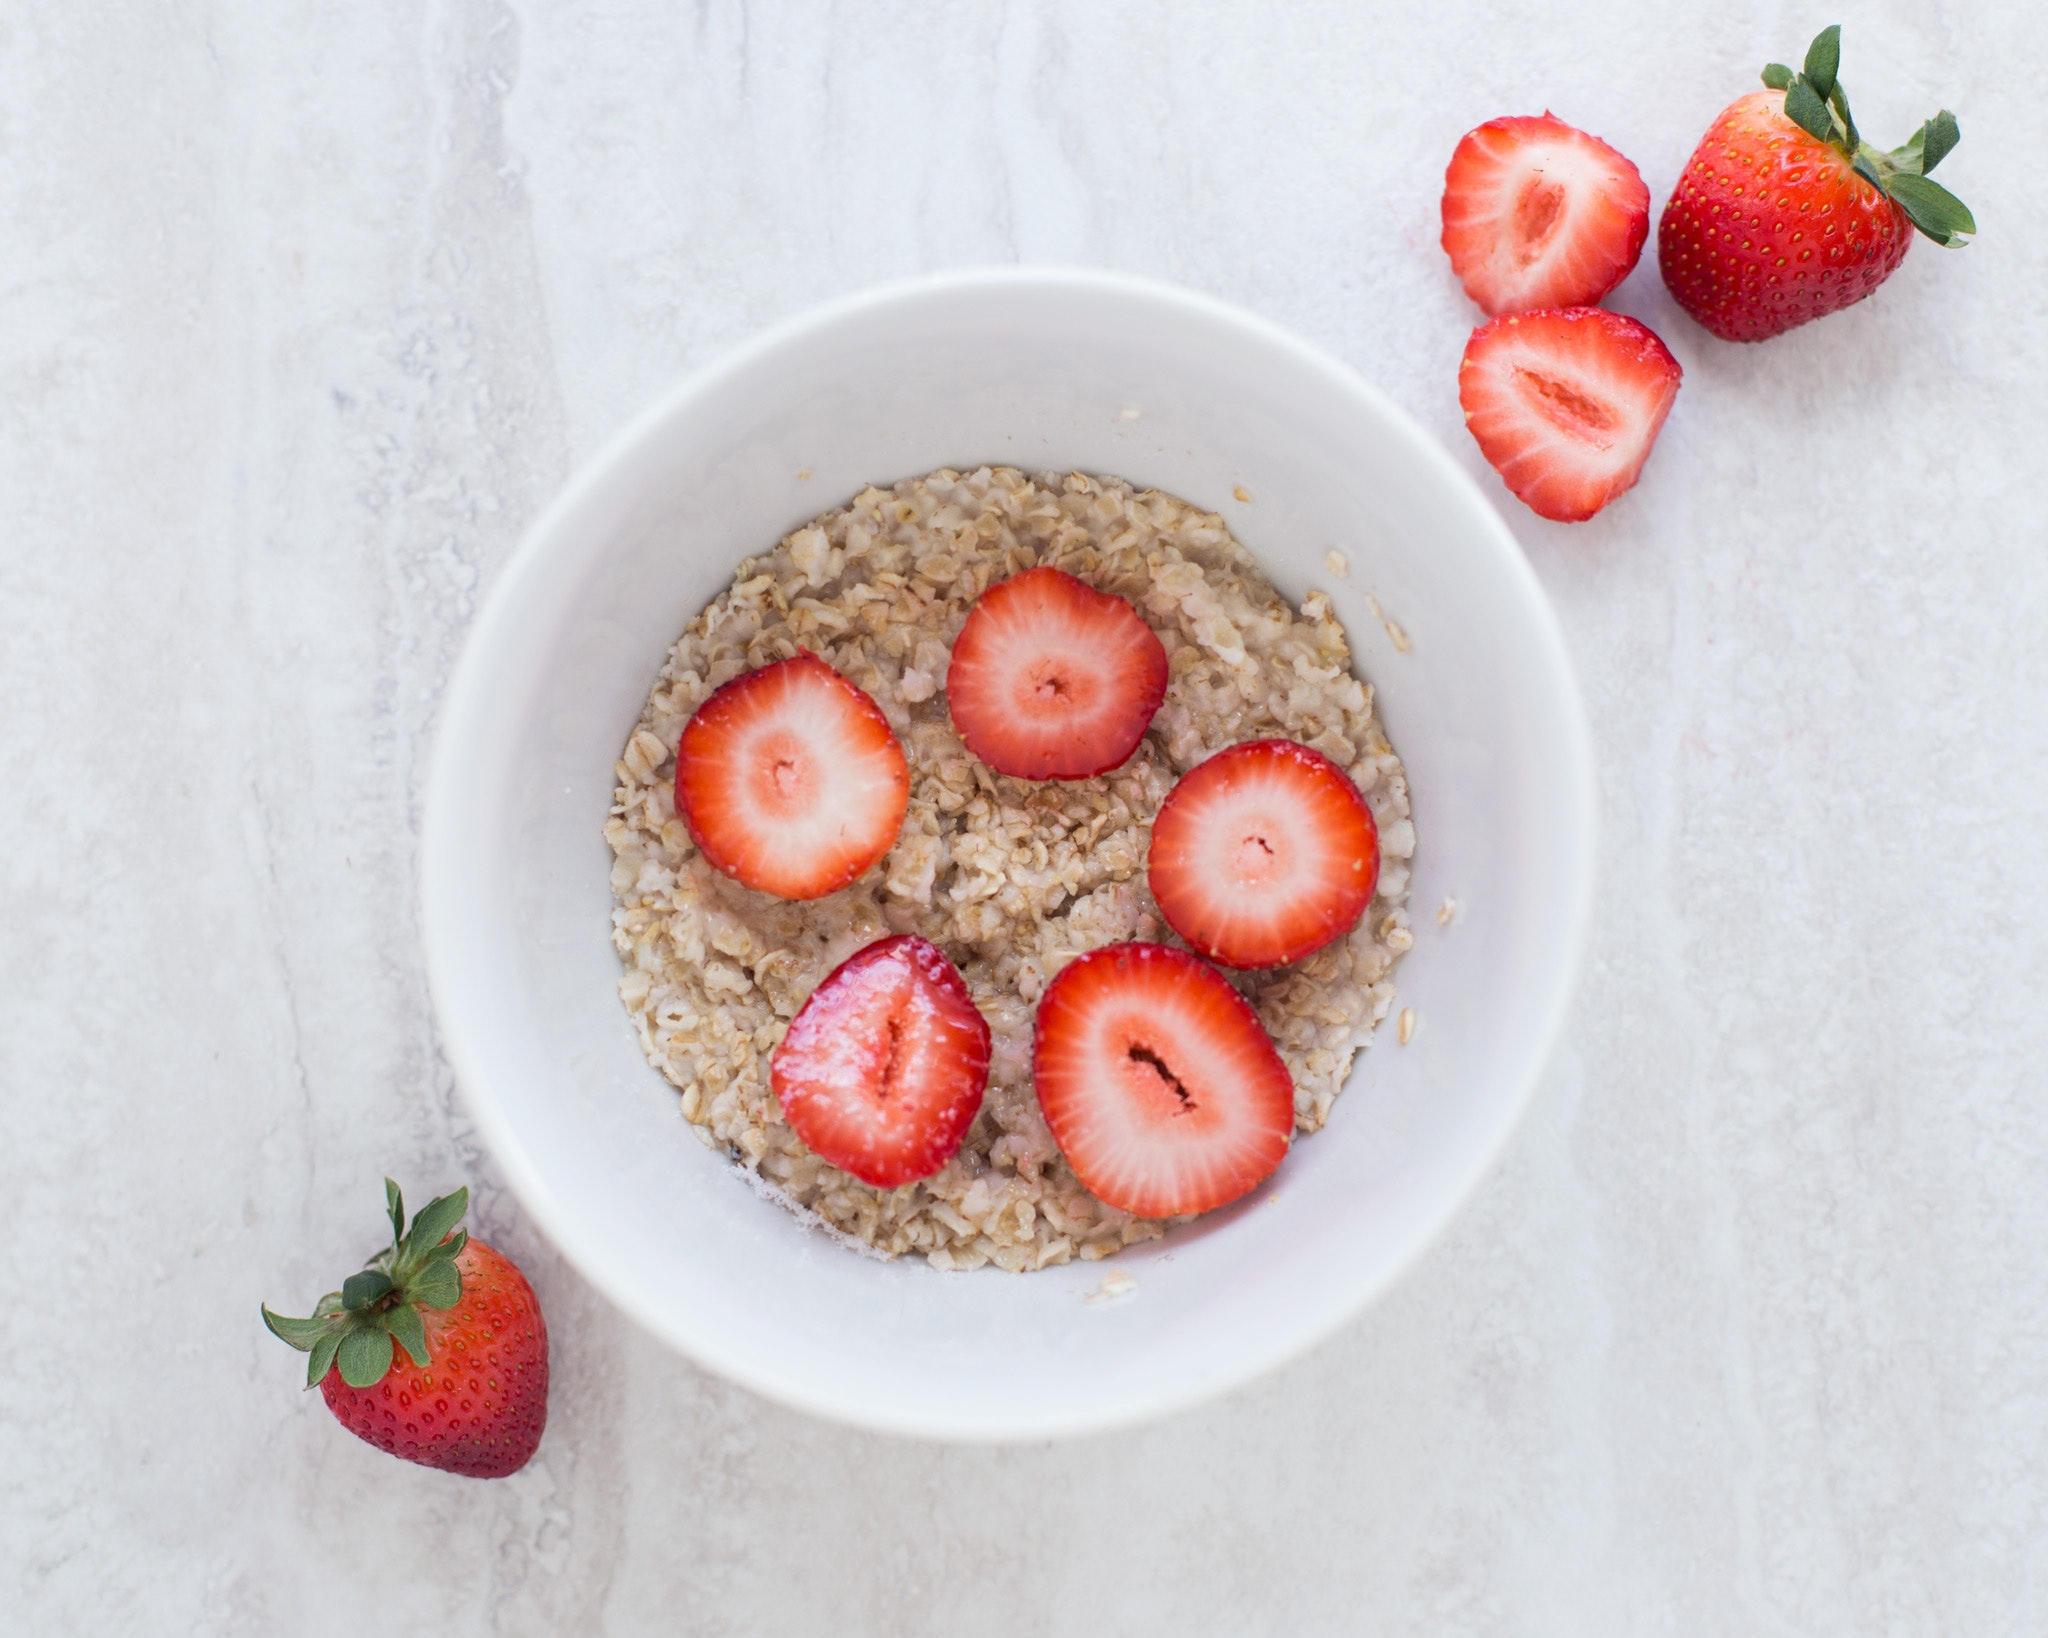 healthy back to school recipes: Overnight oats with berries